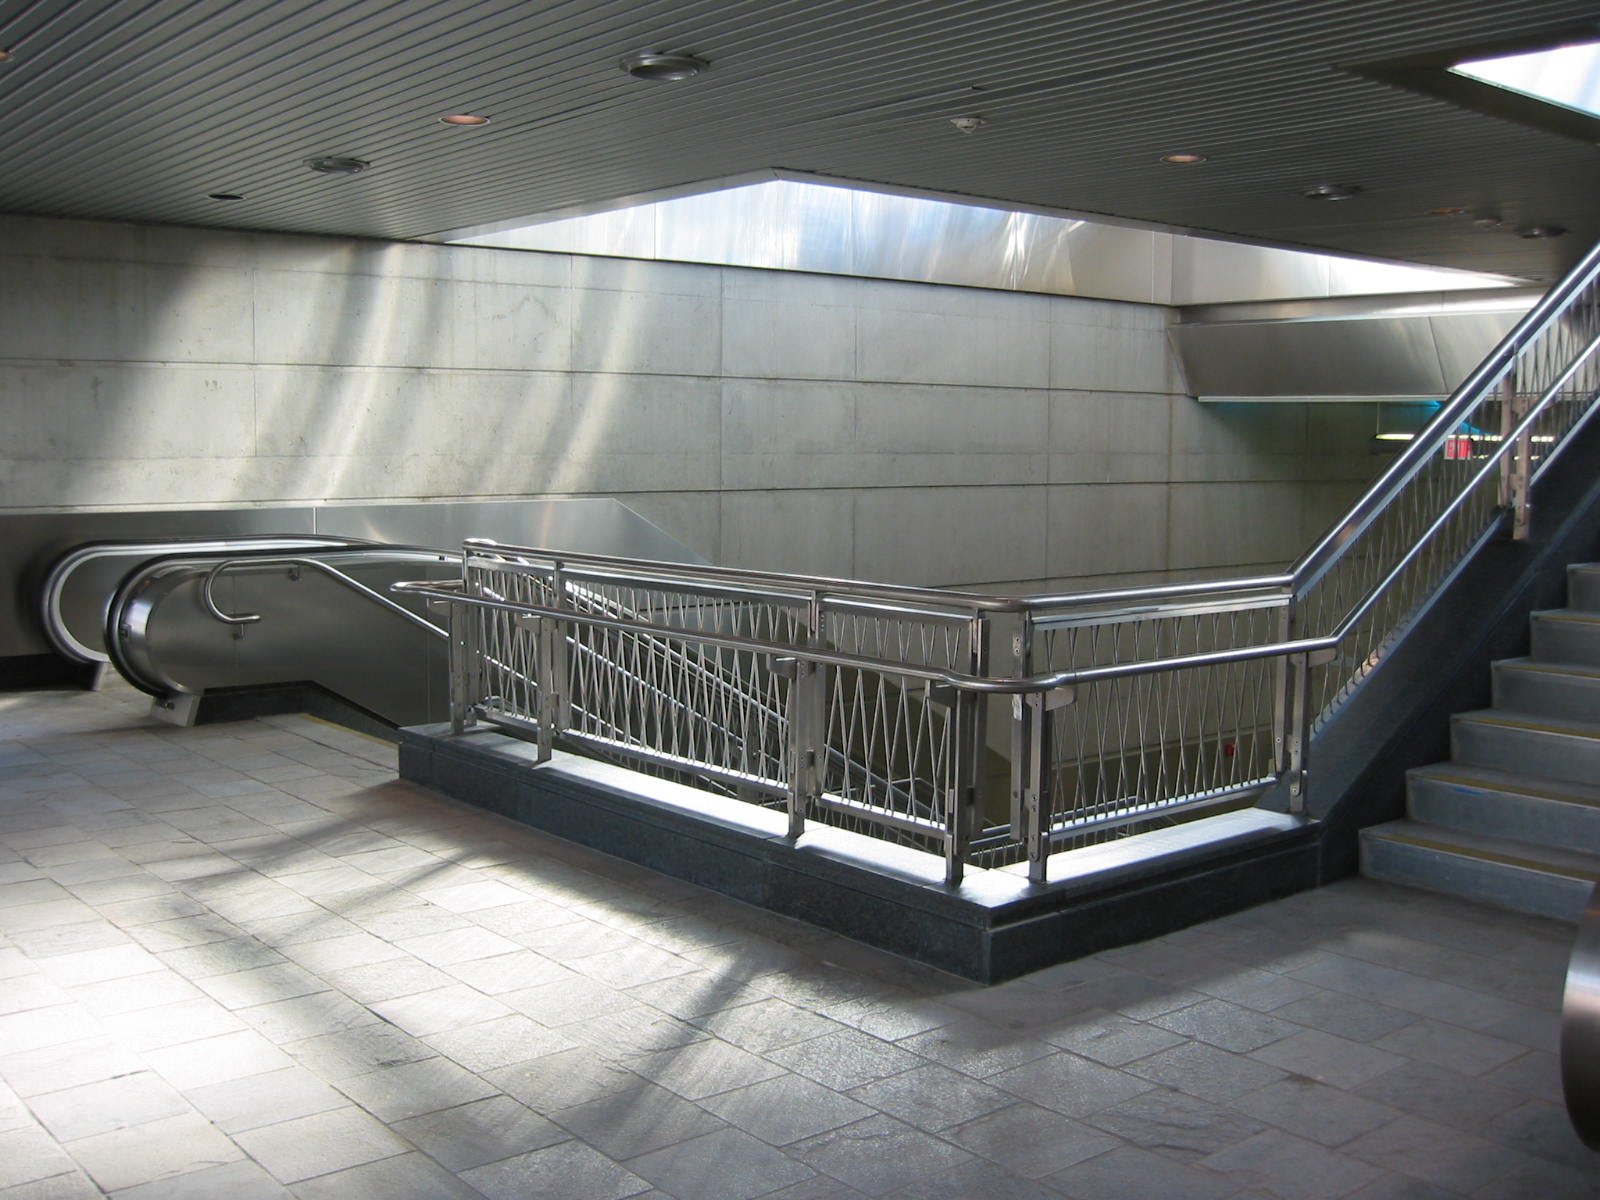 MBTA World Trade Center Station